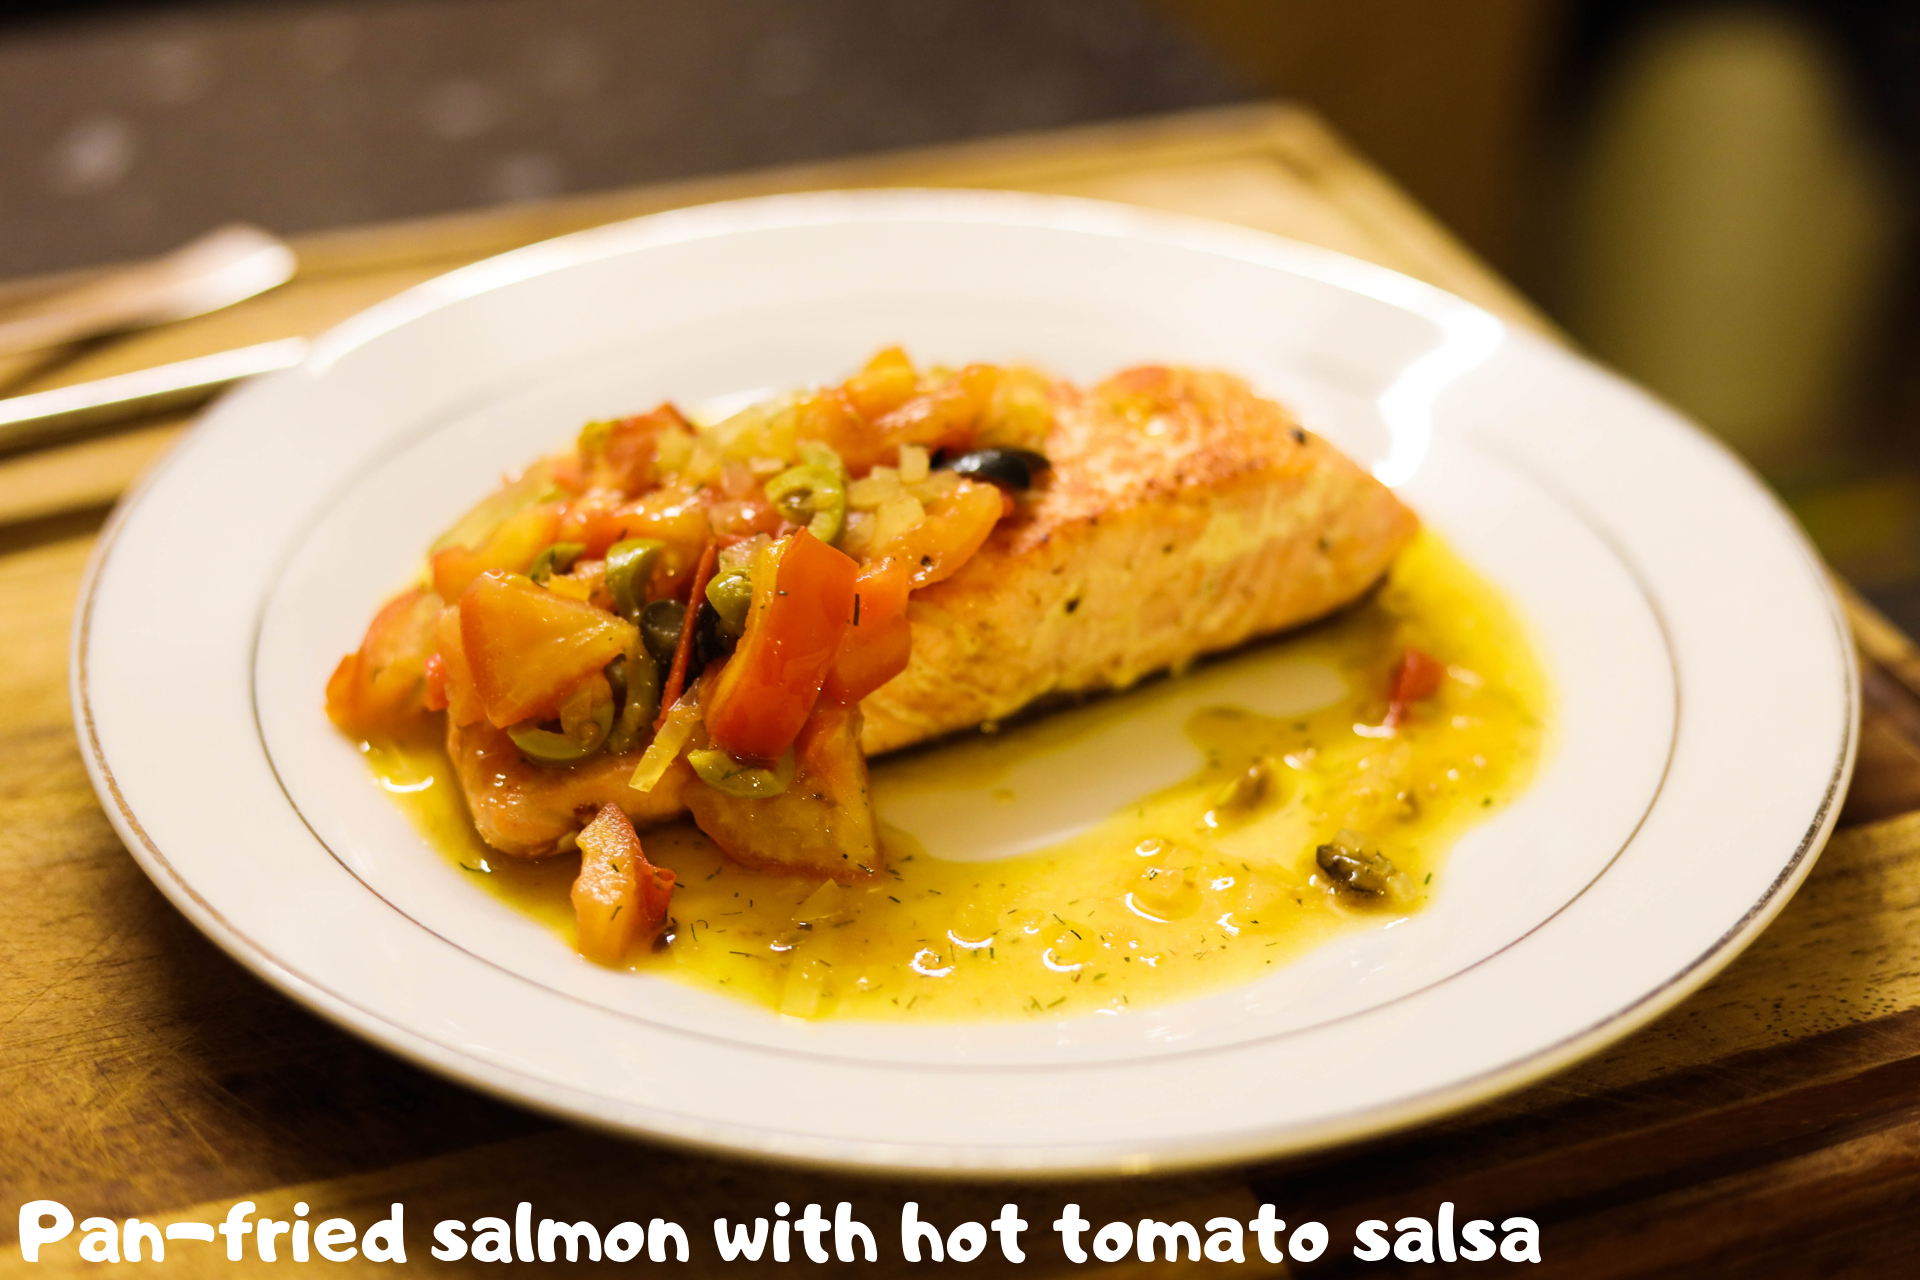 Pan-fried salmon with hot tomato salsa